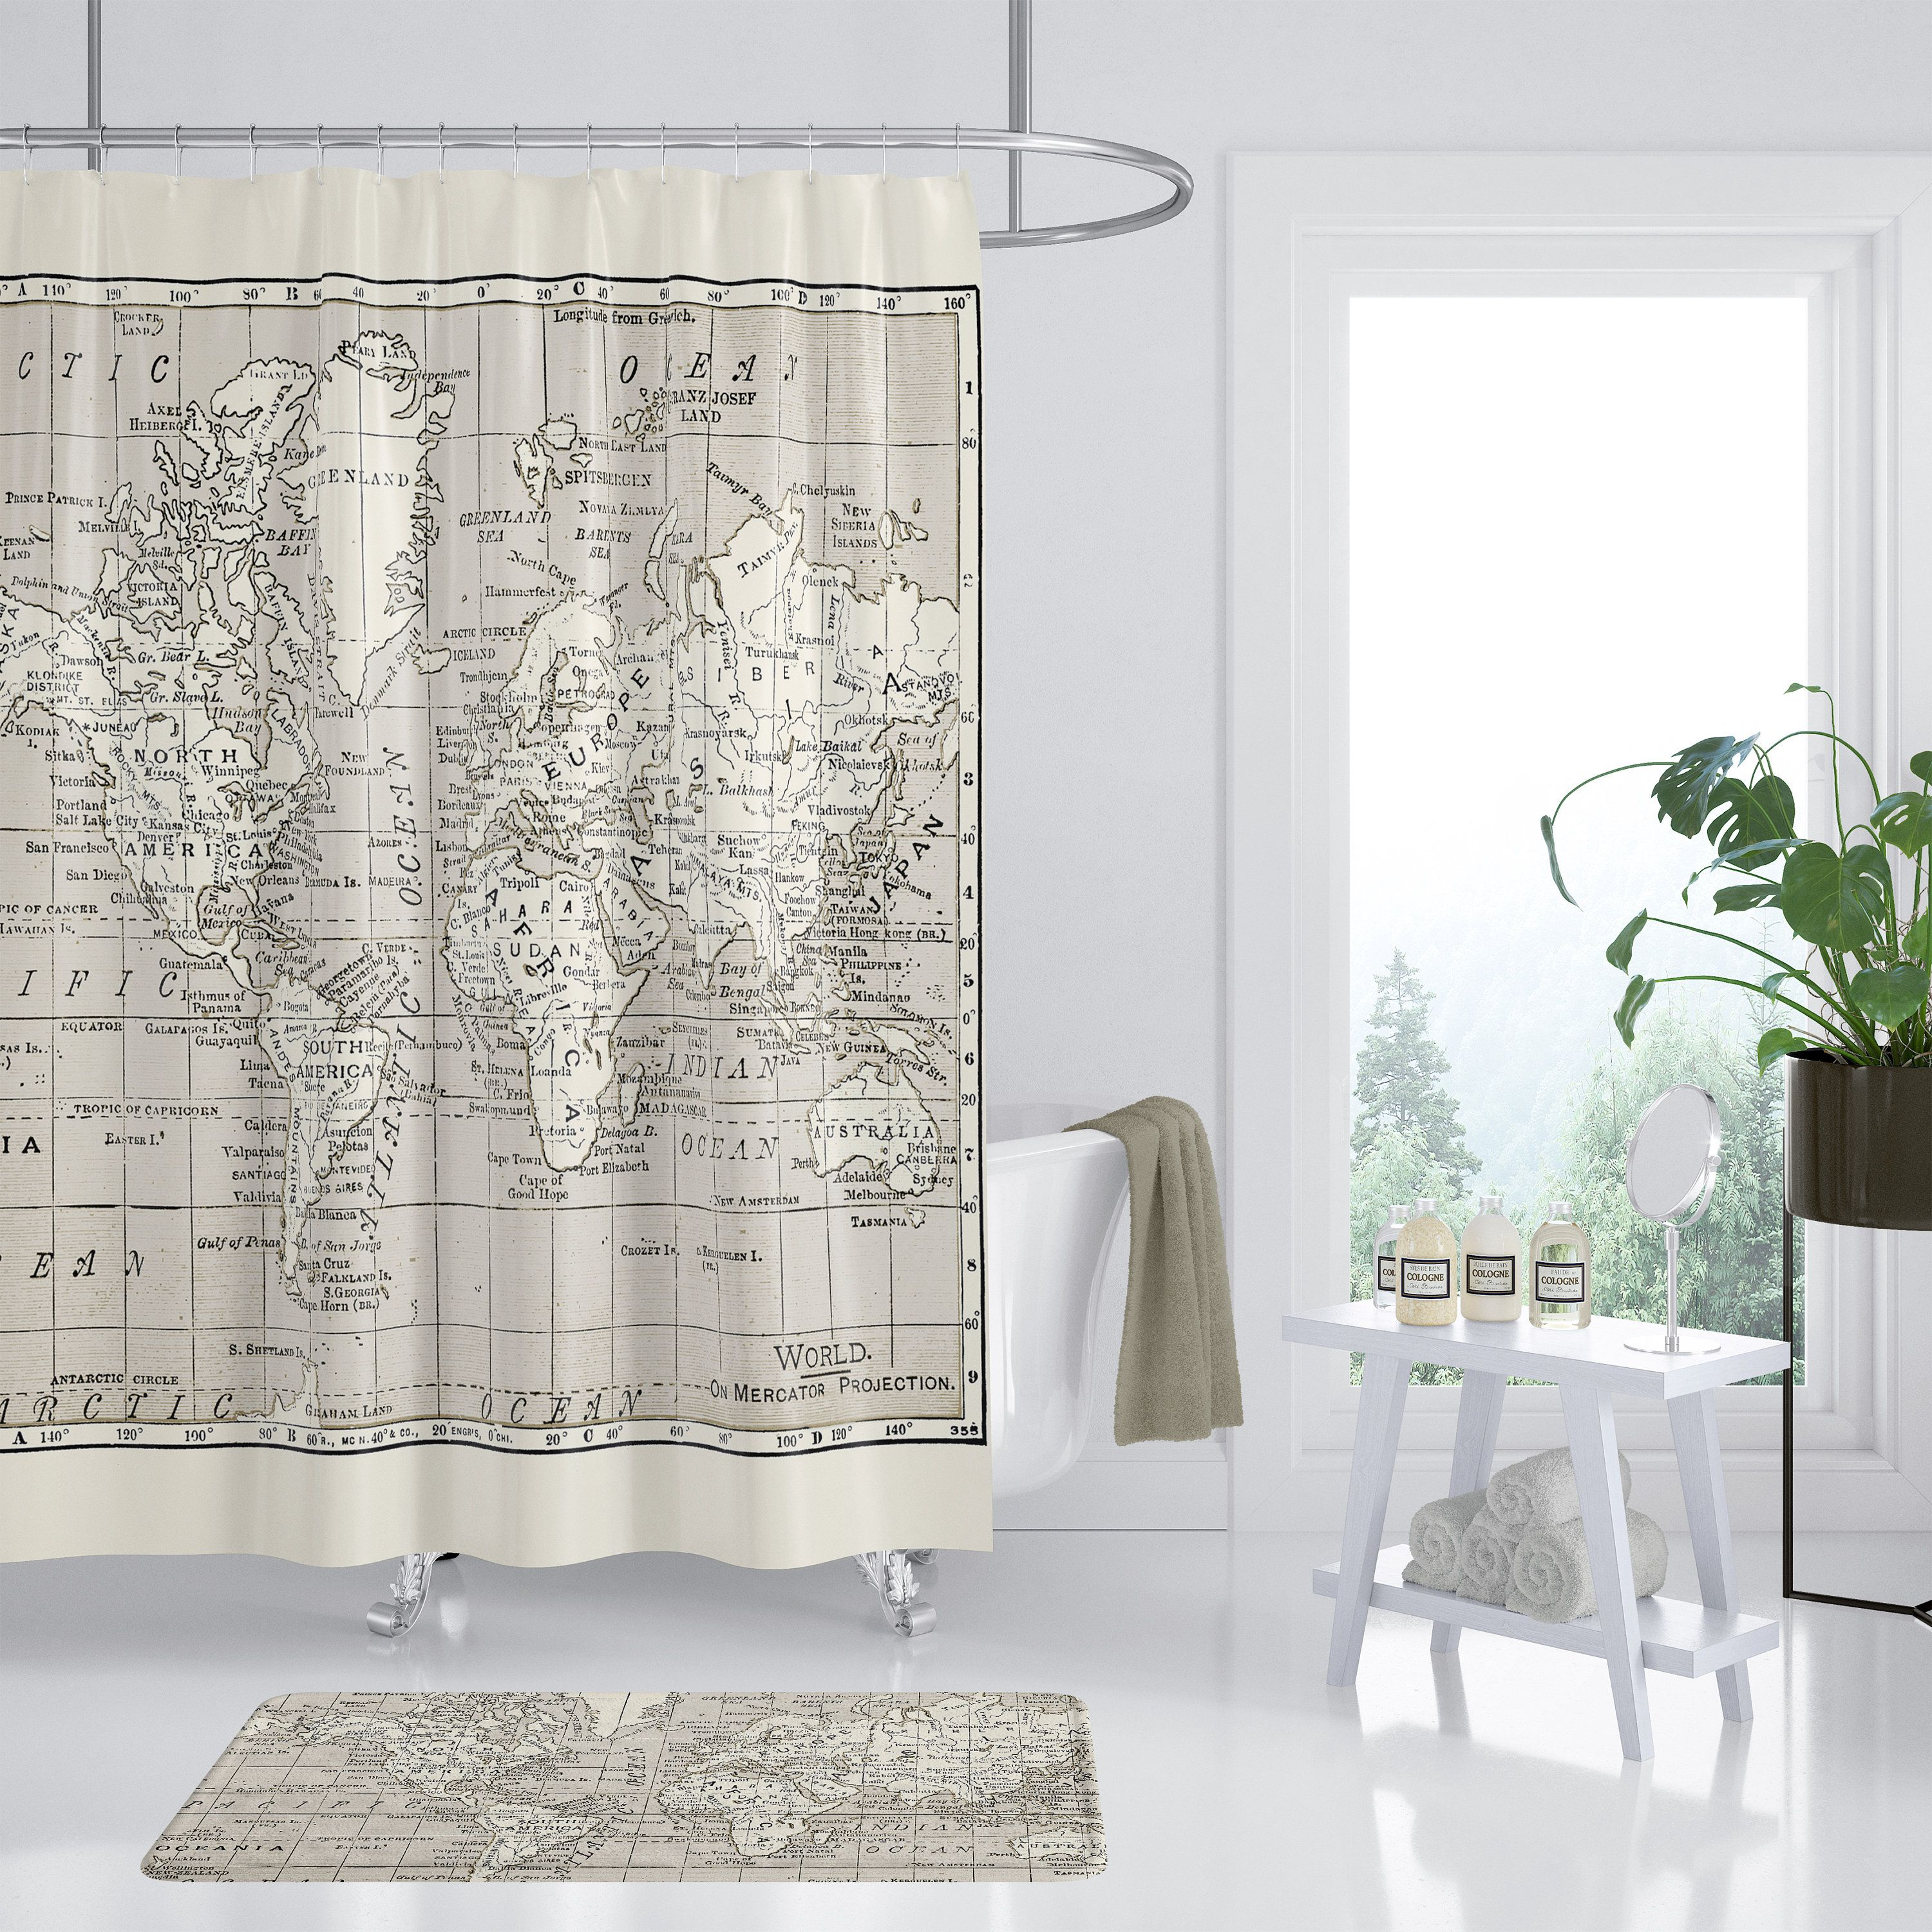 World Map Shower Curtain 72x72 Funny Shower Curtains Vinyl Shower Curtains Curtains